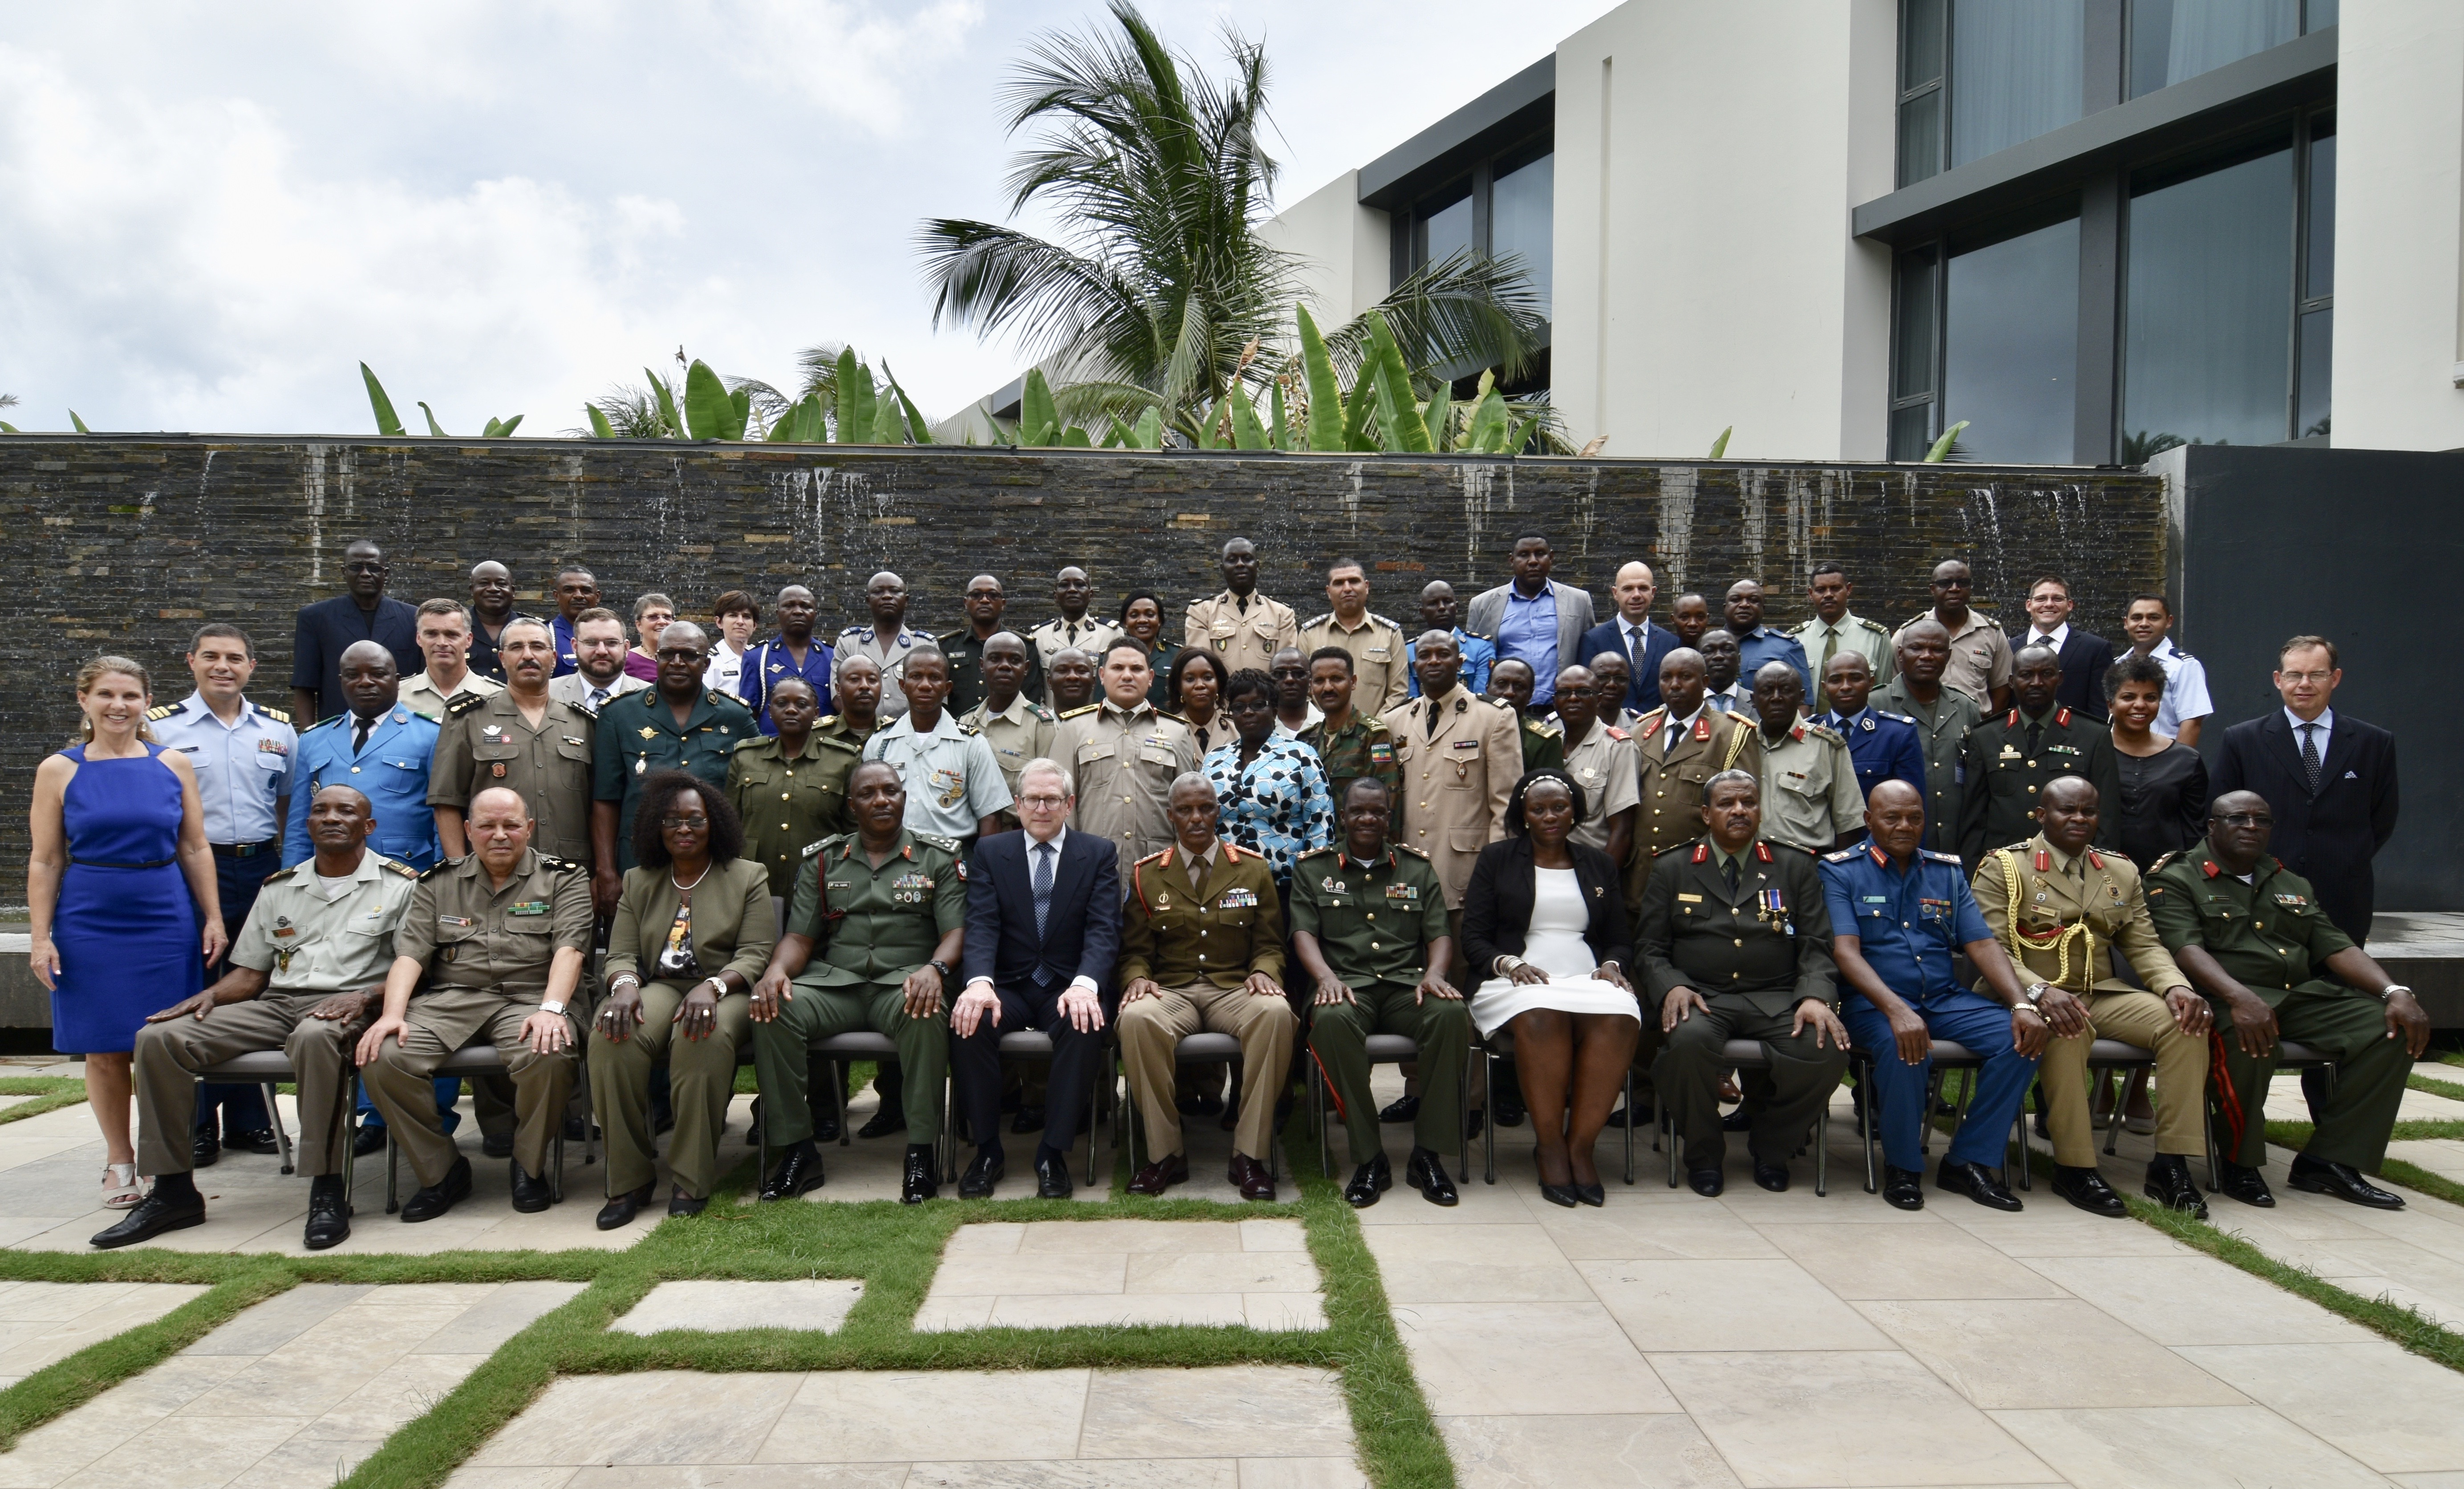 Senegal hosts Accountability Colloquium, the first to be conducted in Africa.  Nearly 50 military and civilian legal professionals and troop commanders from 24 African countries participated in the event in Senegal, Aug. 22-24, 2017, which was coordinated by U.S. AFRICOM in cooperation with the International Institute of Humanitarian Law. Senegal volunteered to host this year's colloquium and participants were welcomed by Contre-amiral Momar Diagne, head of the Senegalese Navy. This was the fifth such event sponsored by U.S. AFRICOM's Office of Legal Counsel, Legal Engagements Division. This year, AC V continued the effort to address the challenge of establishing the rule of law by expanding the discussion from AC IV to include identifying responsibilities and best practices of commanders and legal advisors in preventing and responding to SEA in peace operations. (Photo by Brenda Law, U.S. AFRICOM Public Affairs/RELEASED)